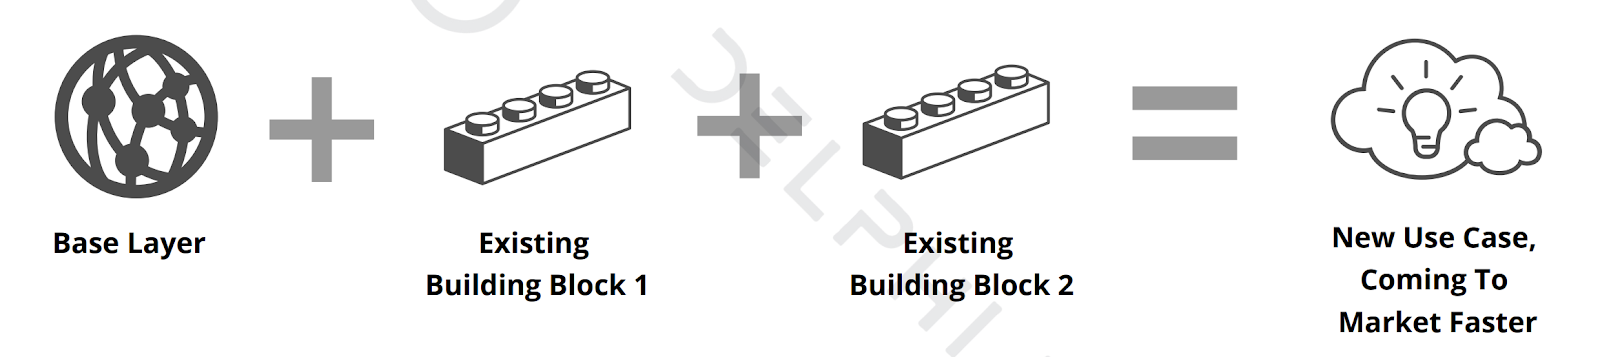 Ethereum Building Blocks — Source is Delphi Digital